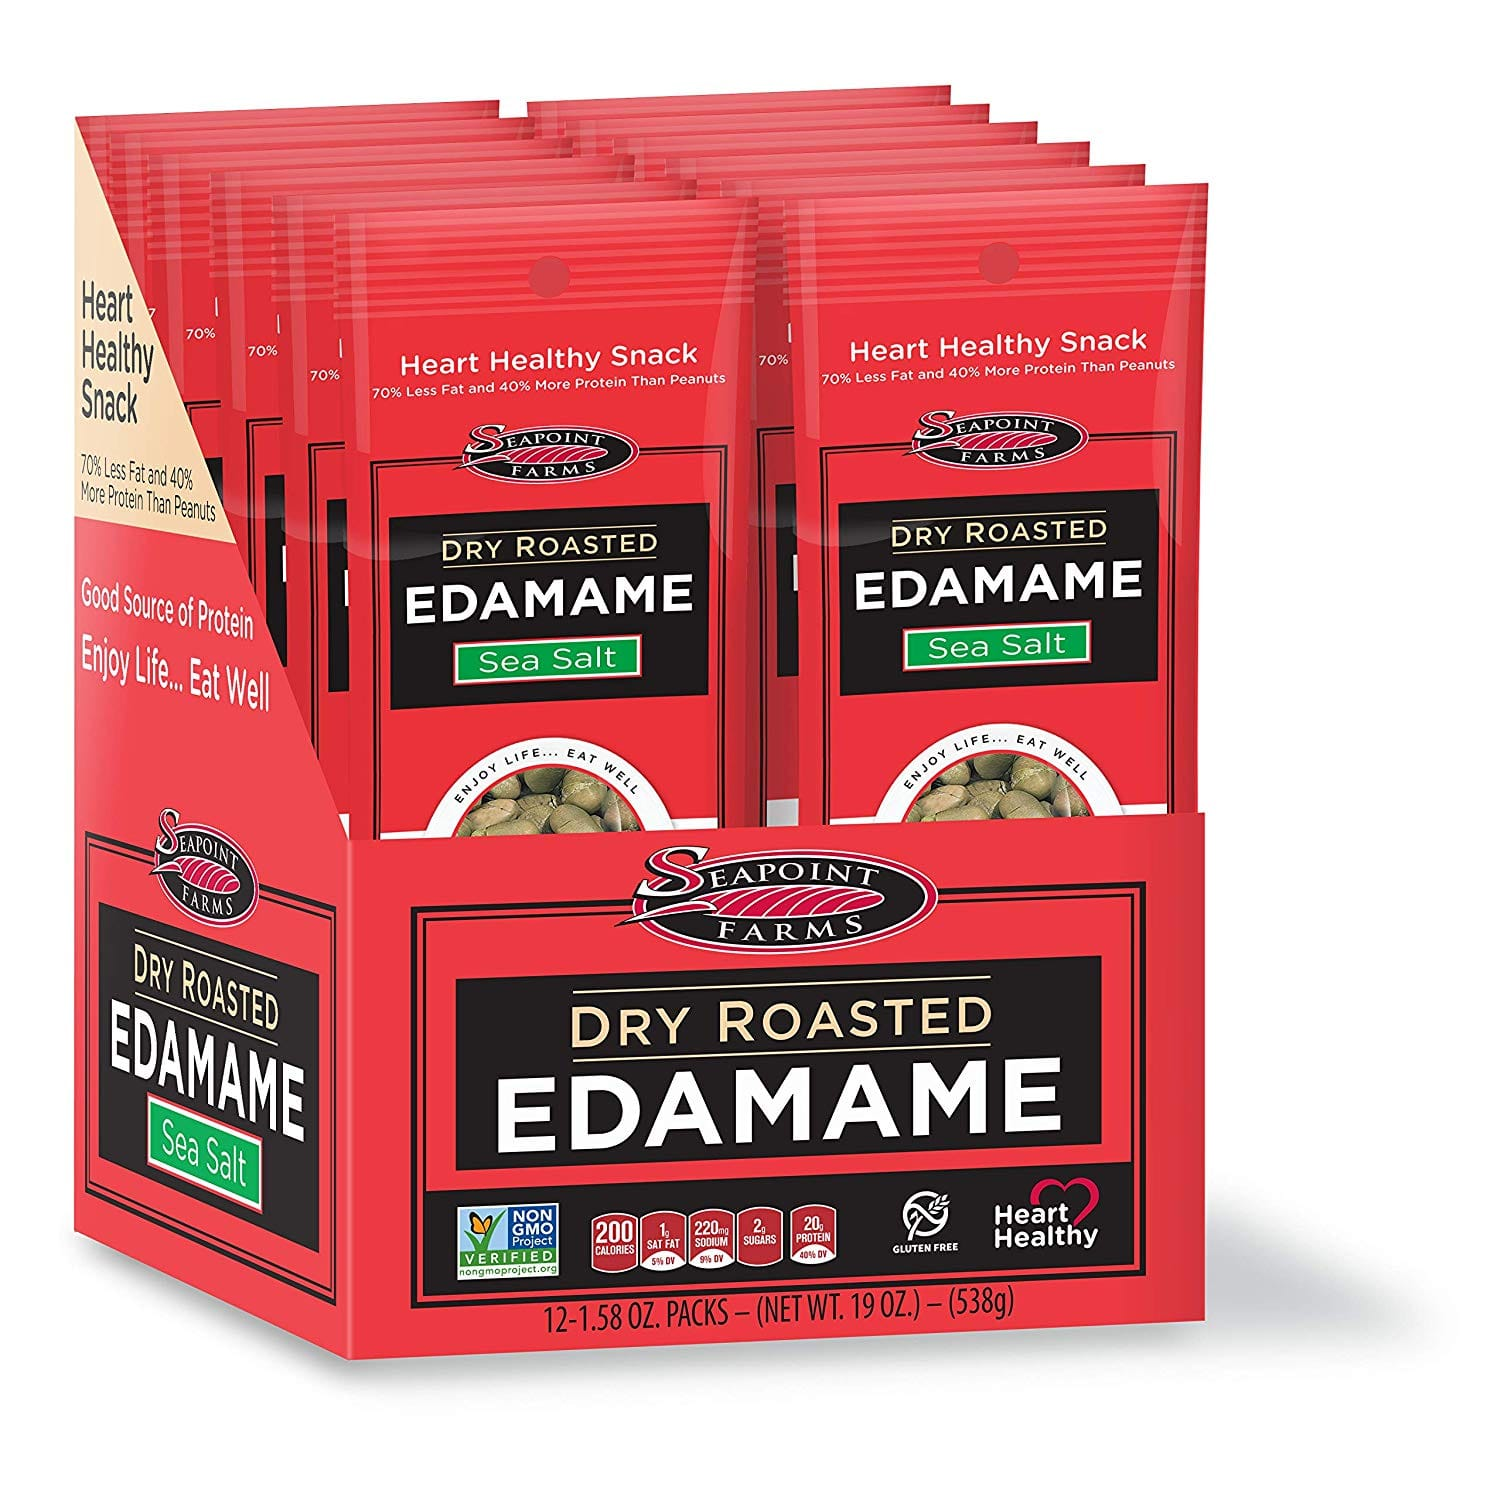 Seapoint Farms Sea Salt Dry Roasted Edamame, Healthy Snacks, 1.58 oz, 12-Pack: $10.15 or less w/S&S